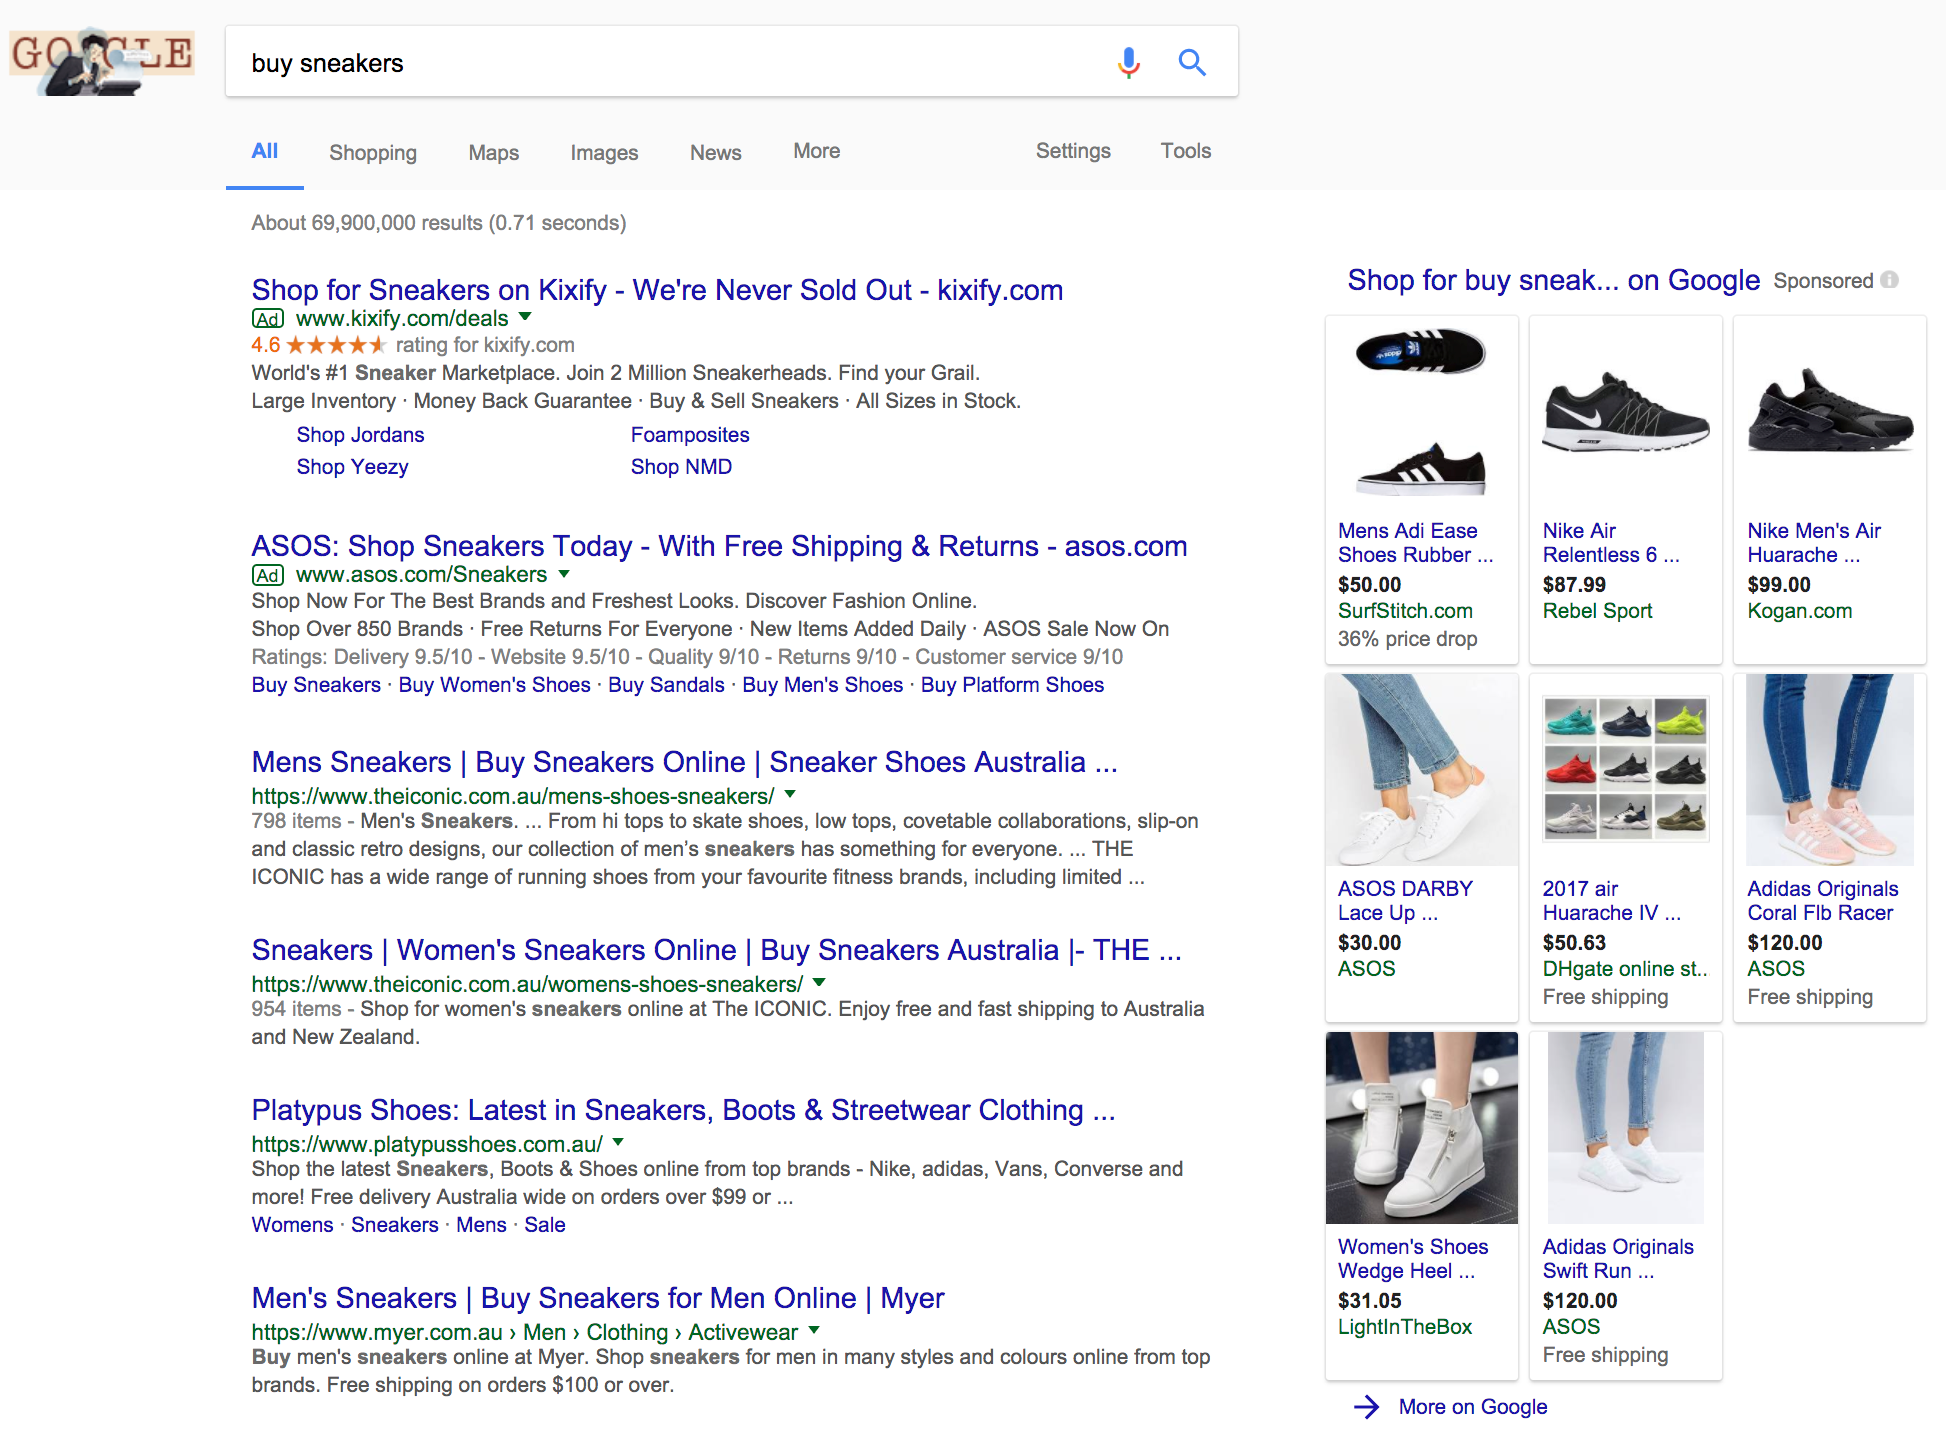 google-shopping-serp-example